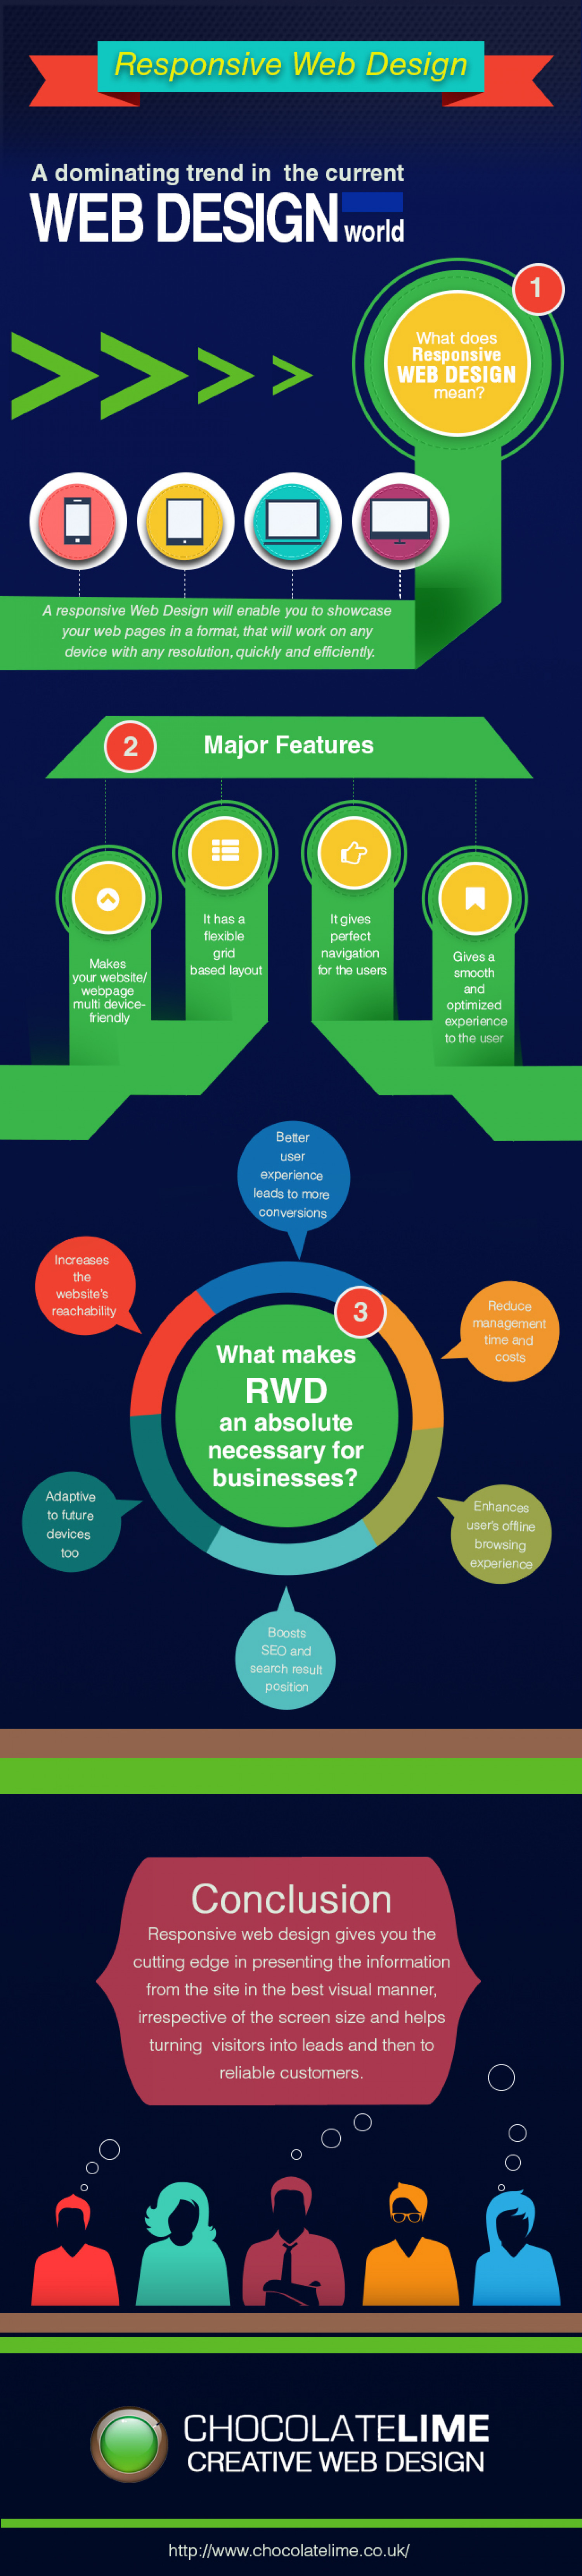 Responsive Web Design - A dominating Trend in the current Web Design world Infographic